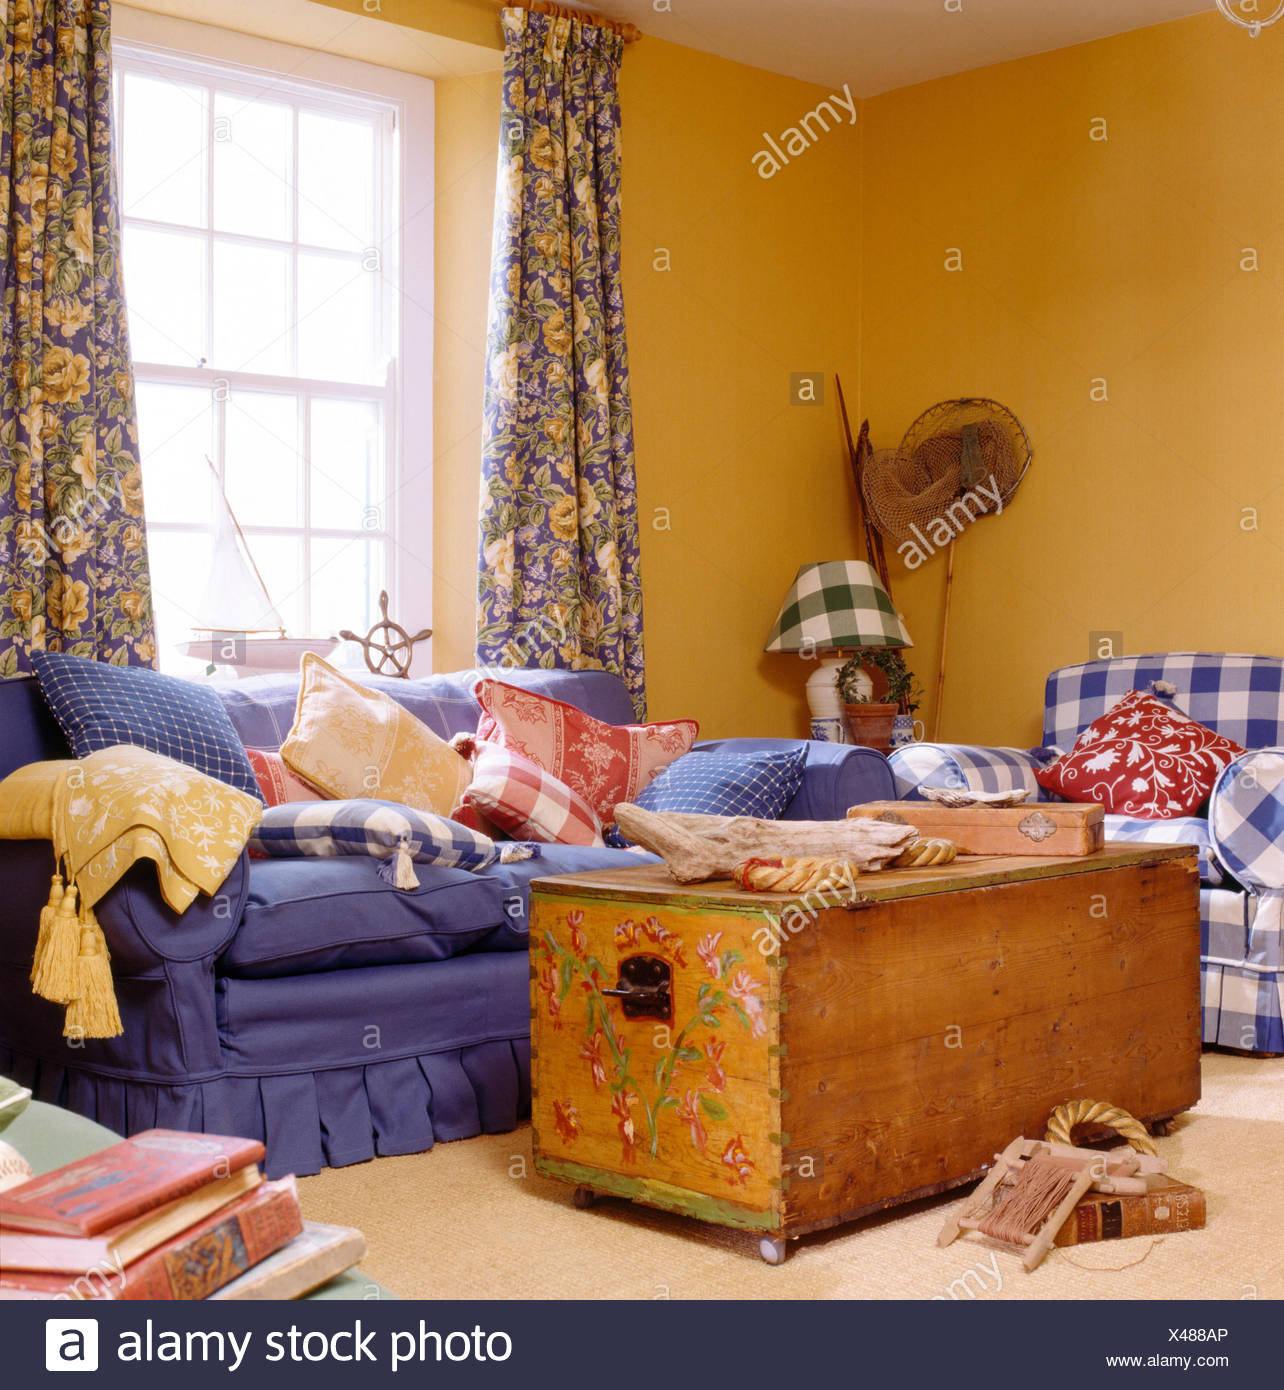 Beau Painted Chest And Blue Sofa In Yellow Coastal Living Room With Blue+yellow  Floral Curtains